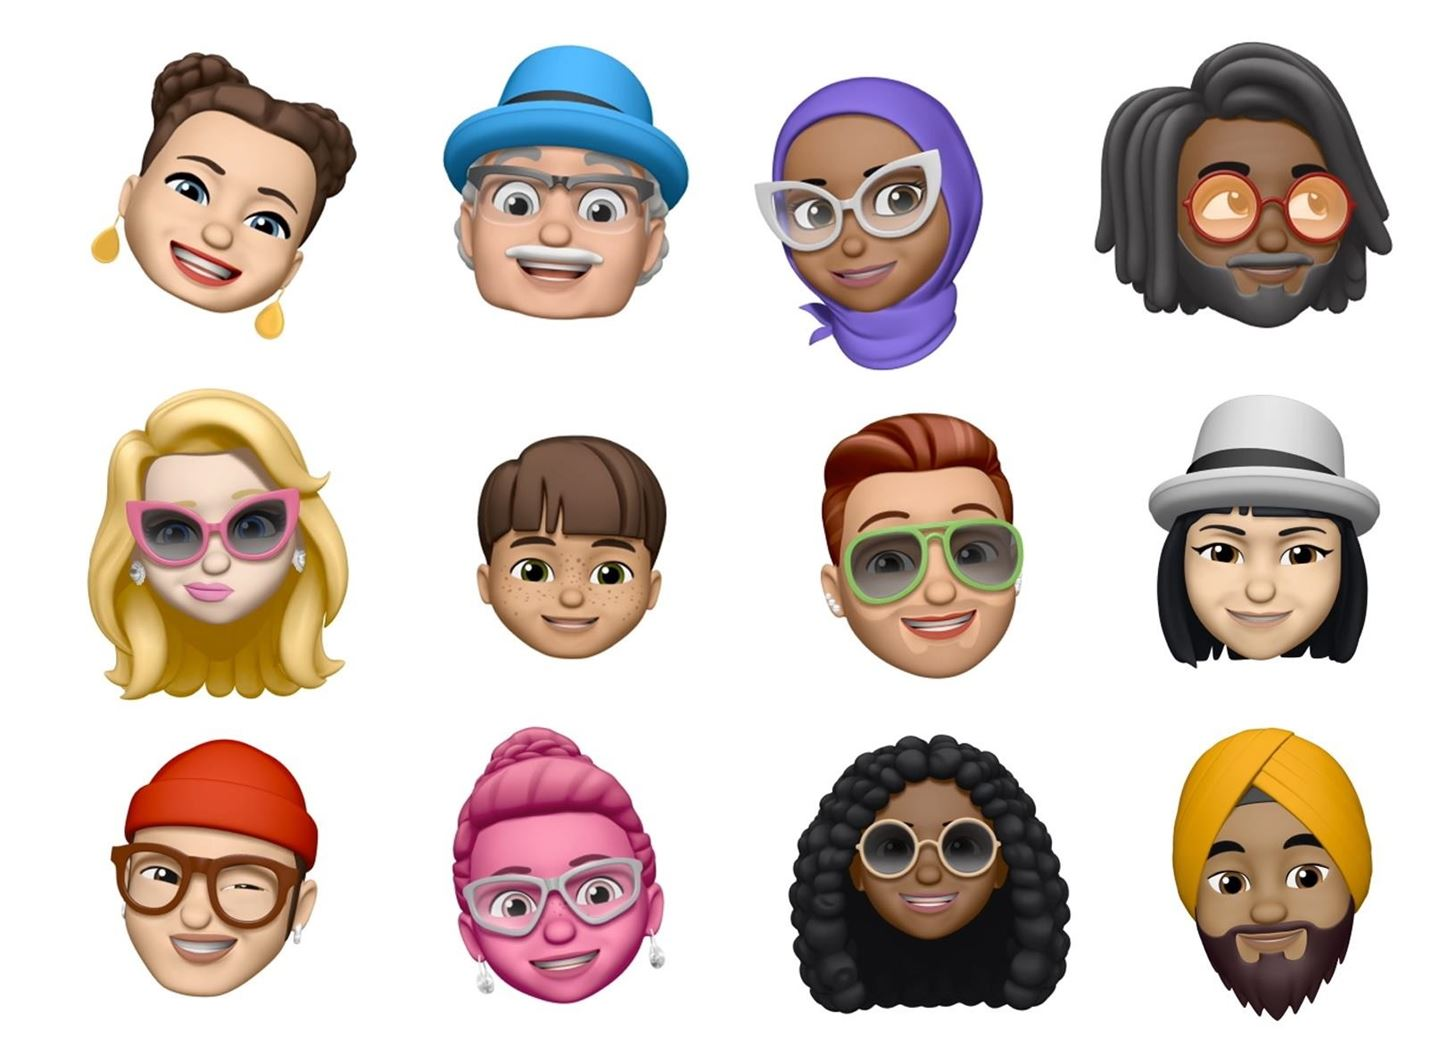 100+ coolest new iOS 12 features you do not know